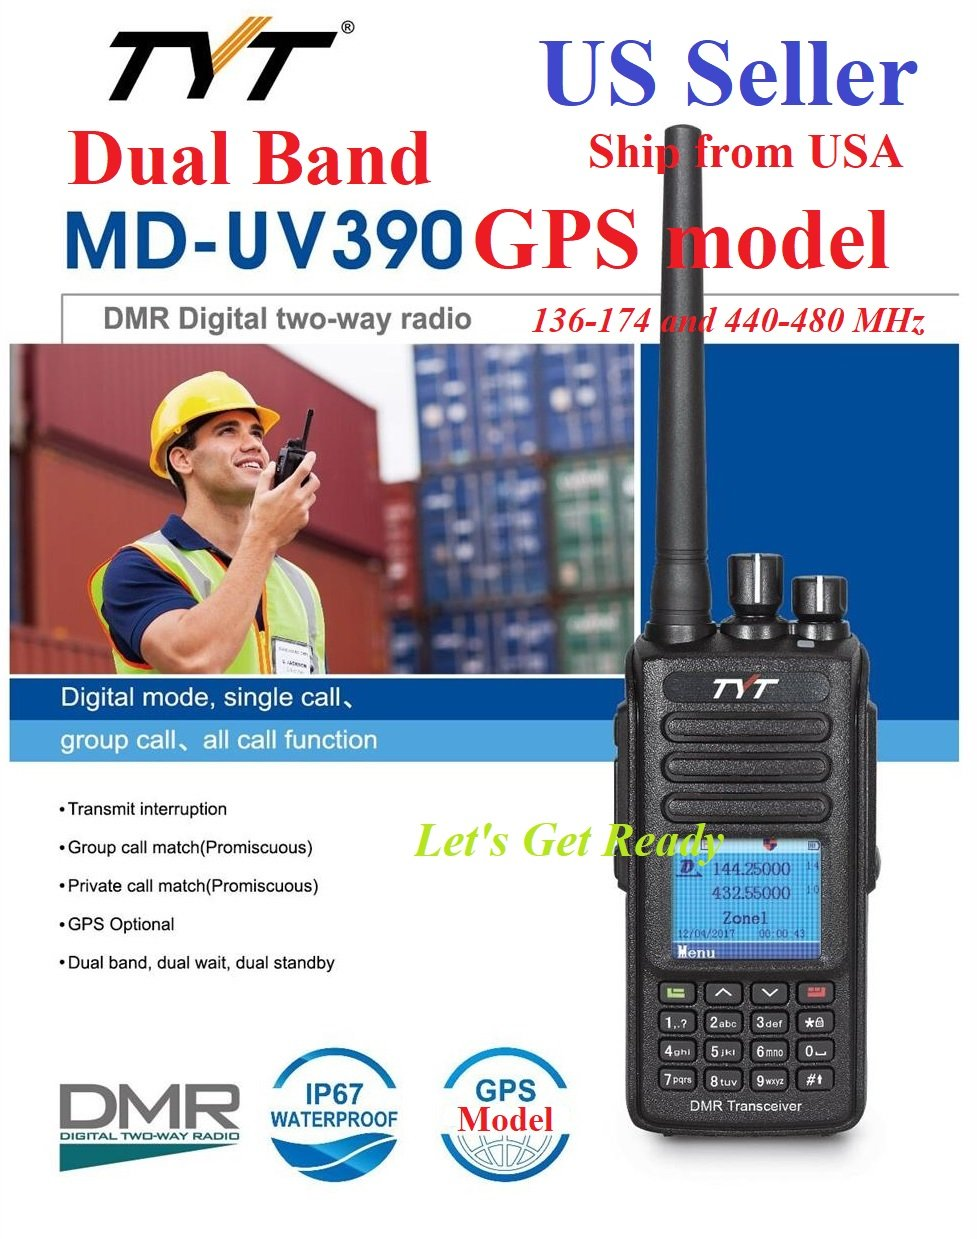 Amazon.com: TYT MD-UV390 GPS IP67 Version Dual Band 136-174 & 400-480 MHz DMR Digital/Analog Radio: Car Electronics